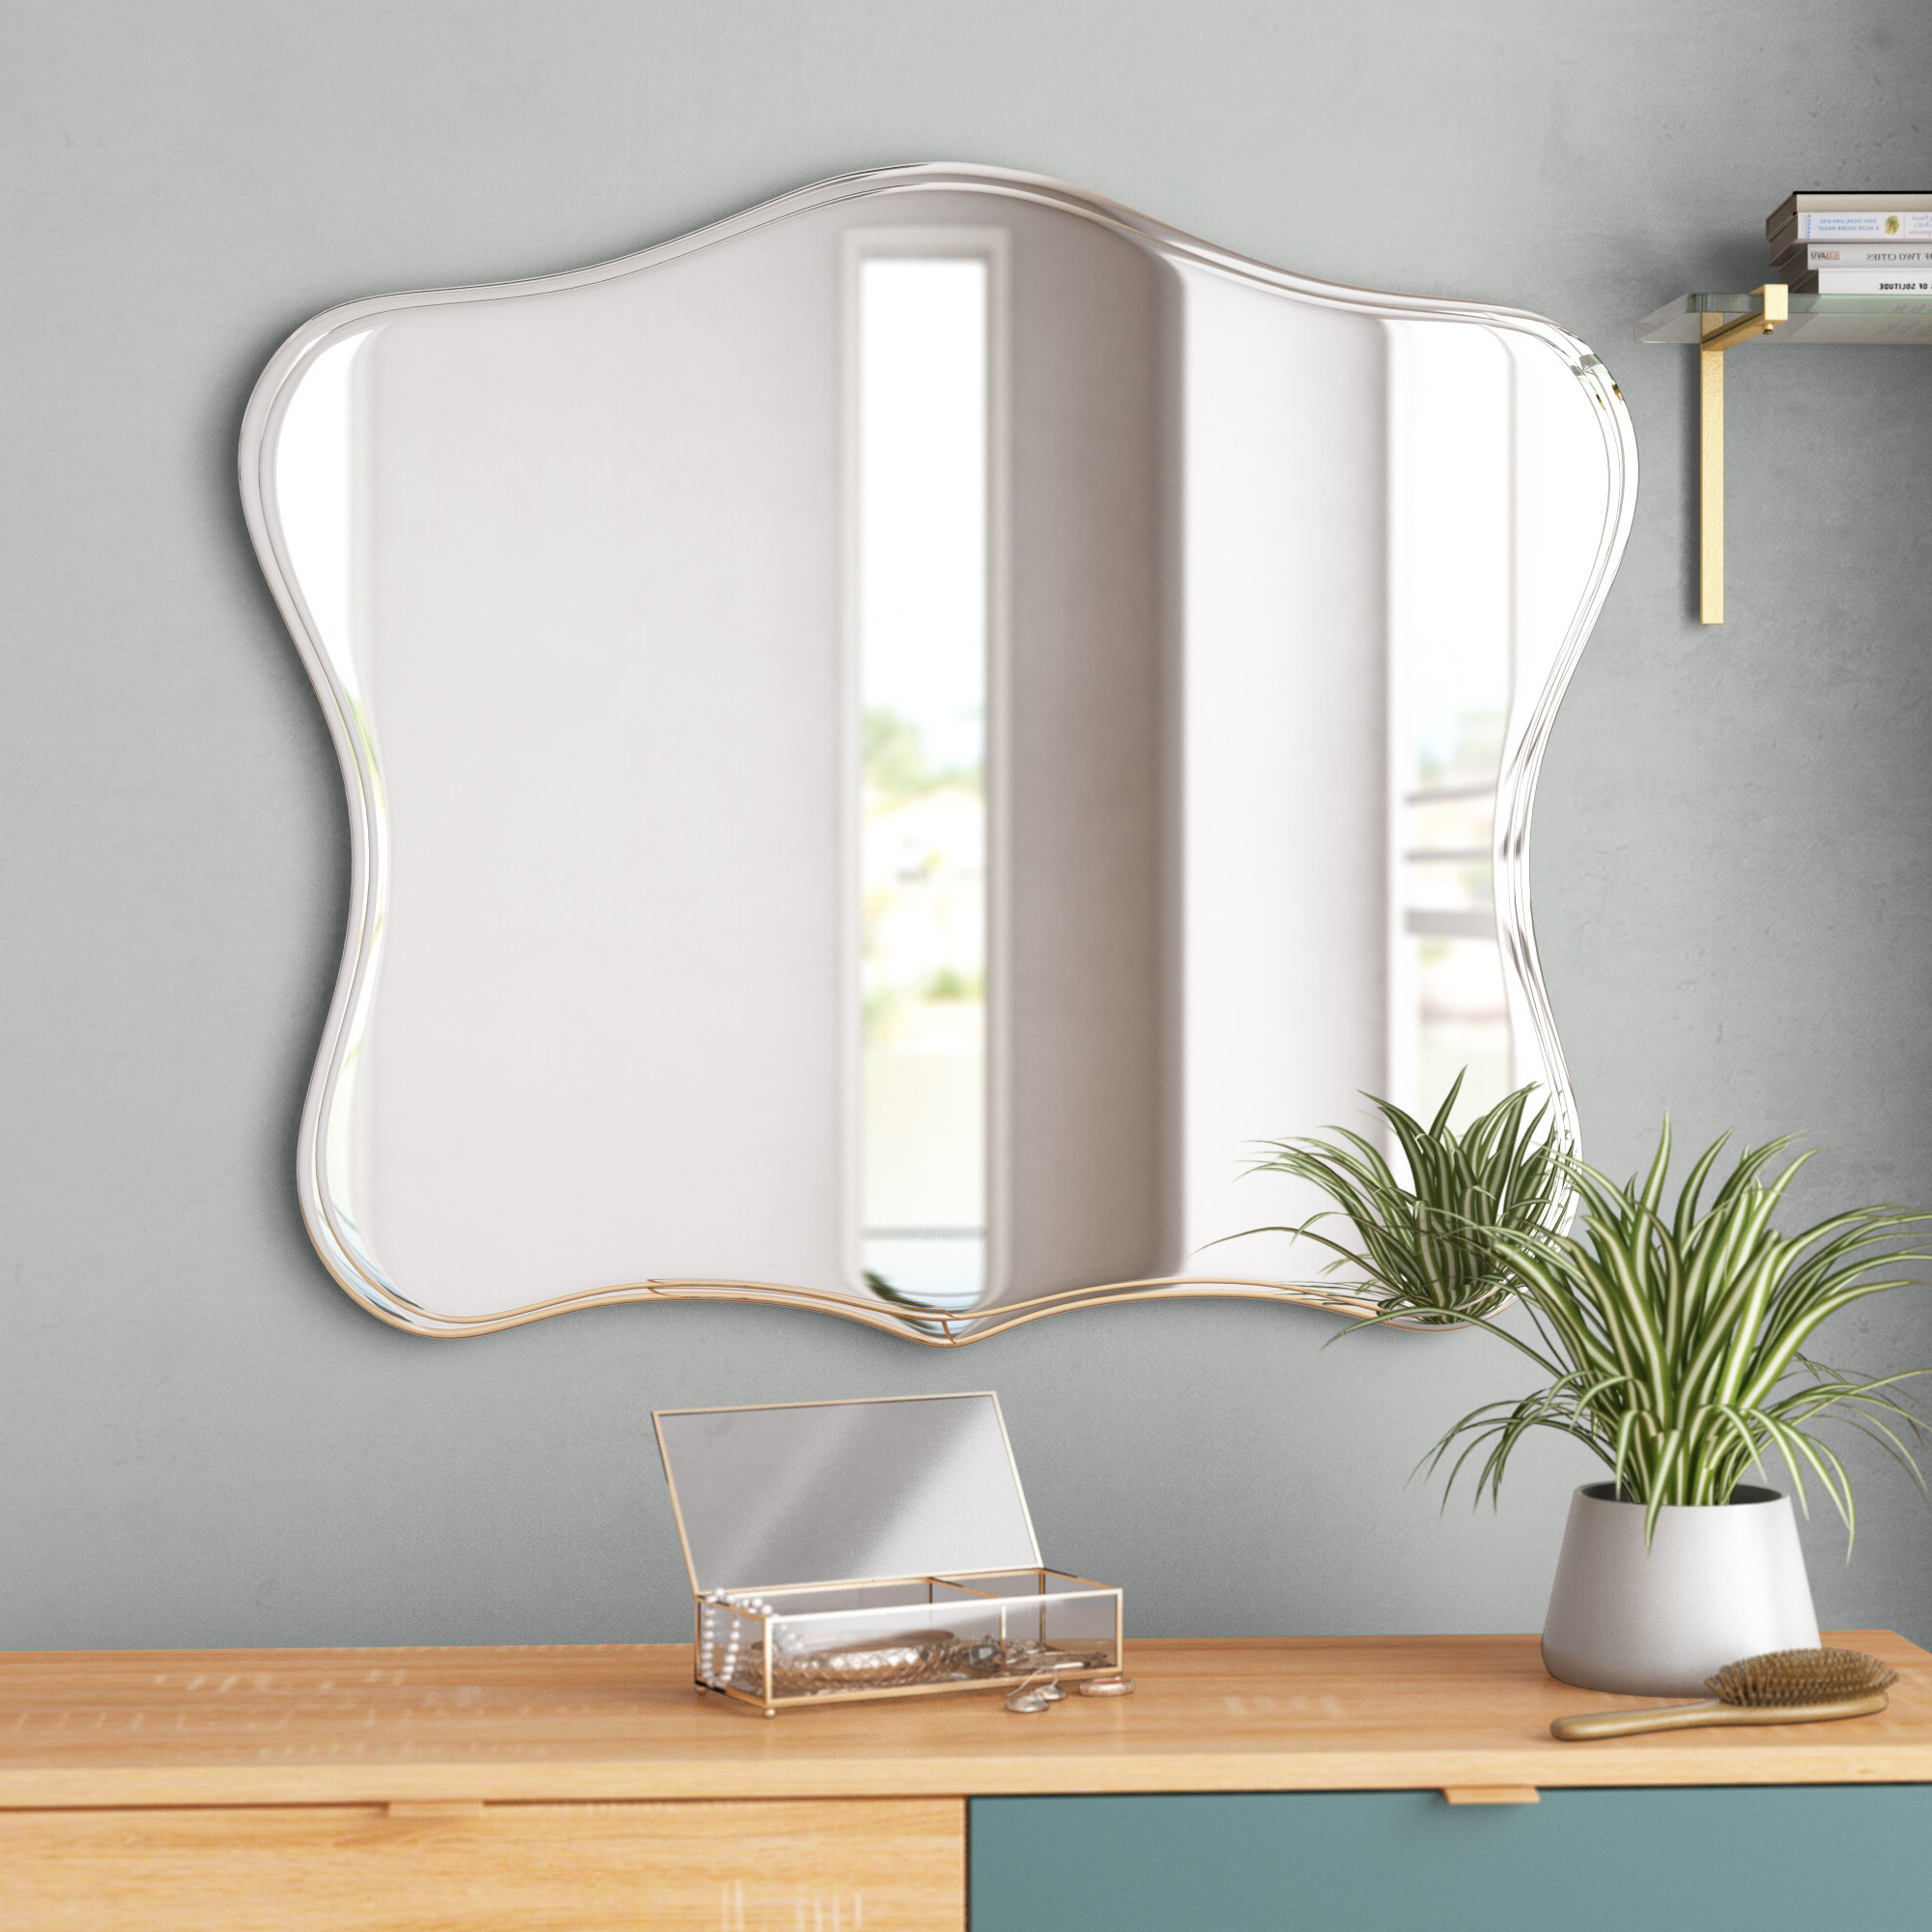 Logan Frameless Wall Mirrors Regarding 2019 Titsworth Frameless Fancy Wall Mirror (Gallery 20 of 20)